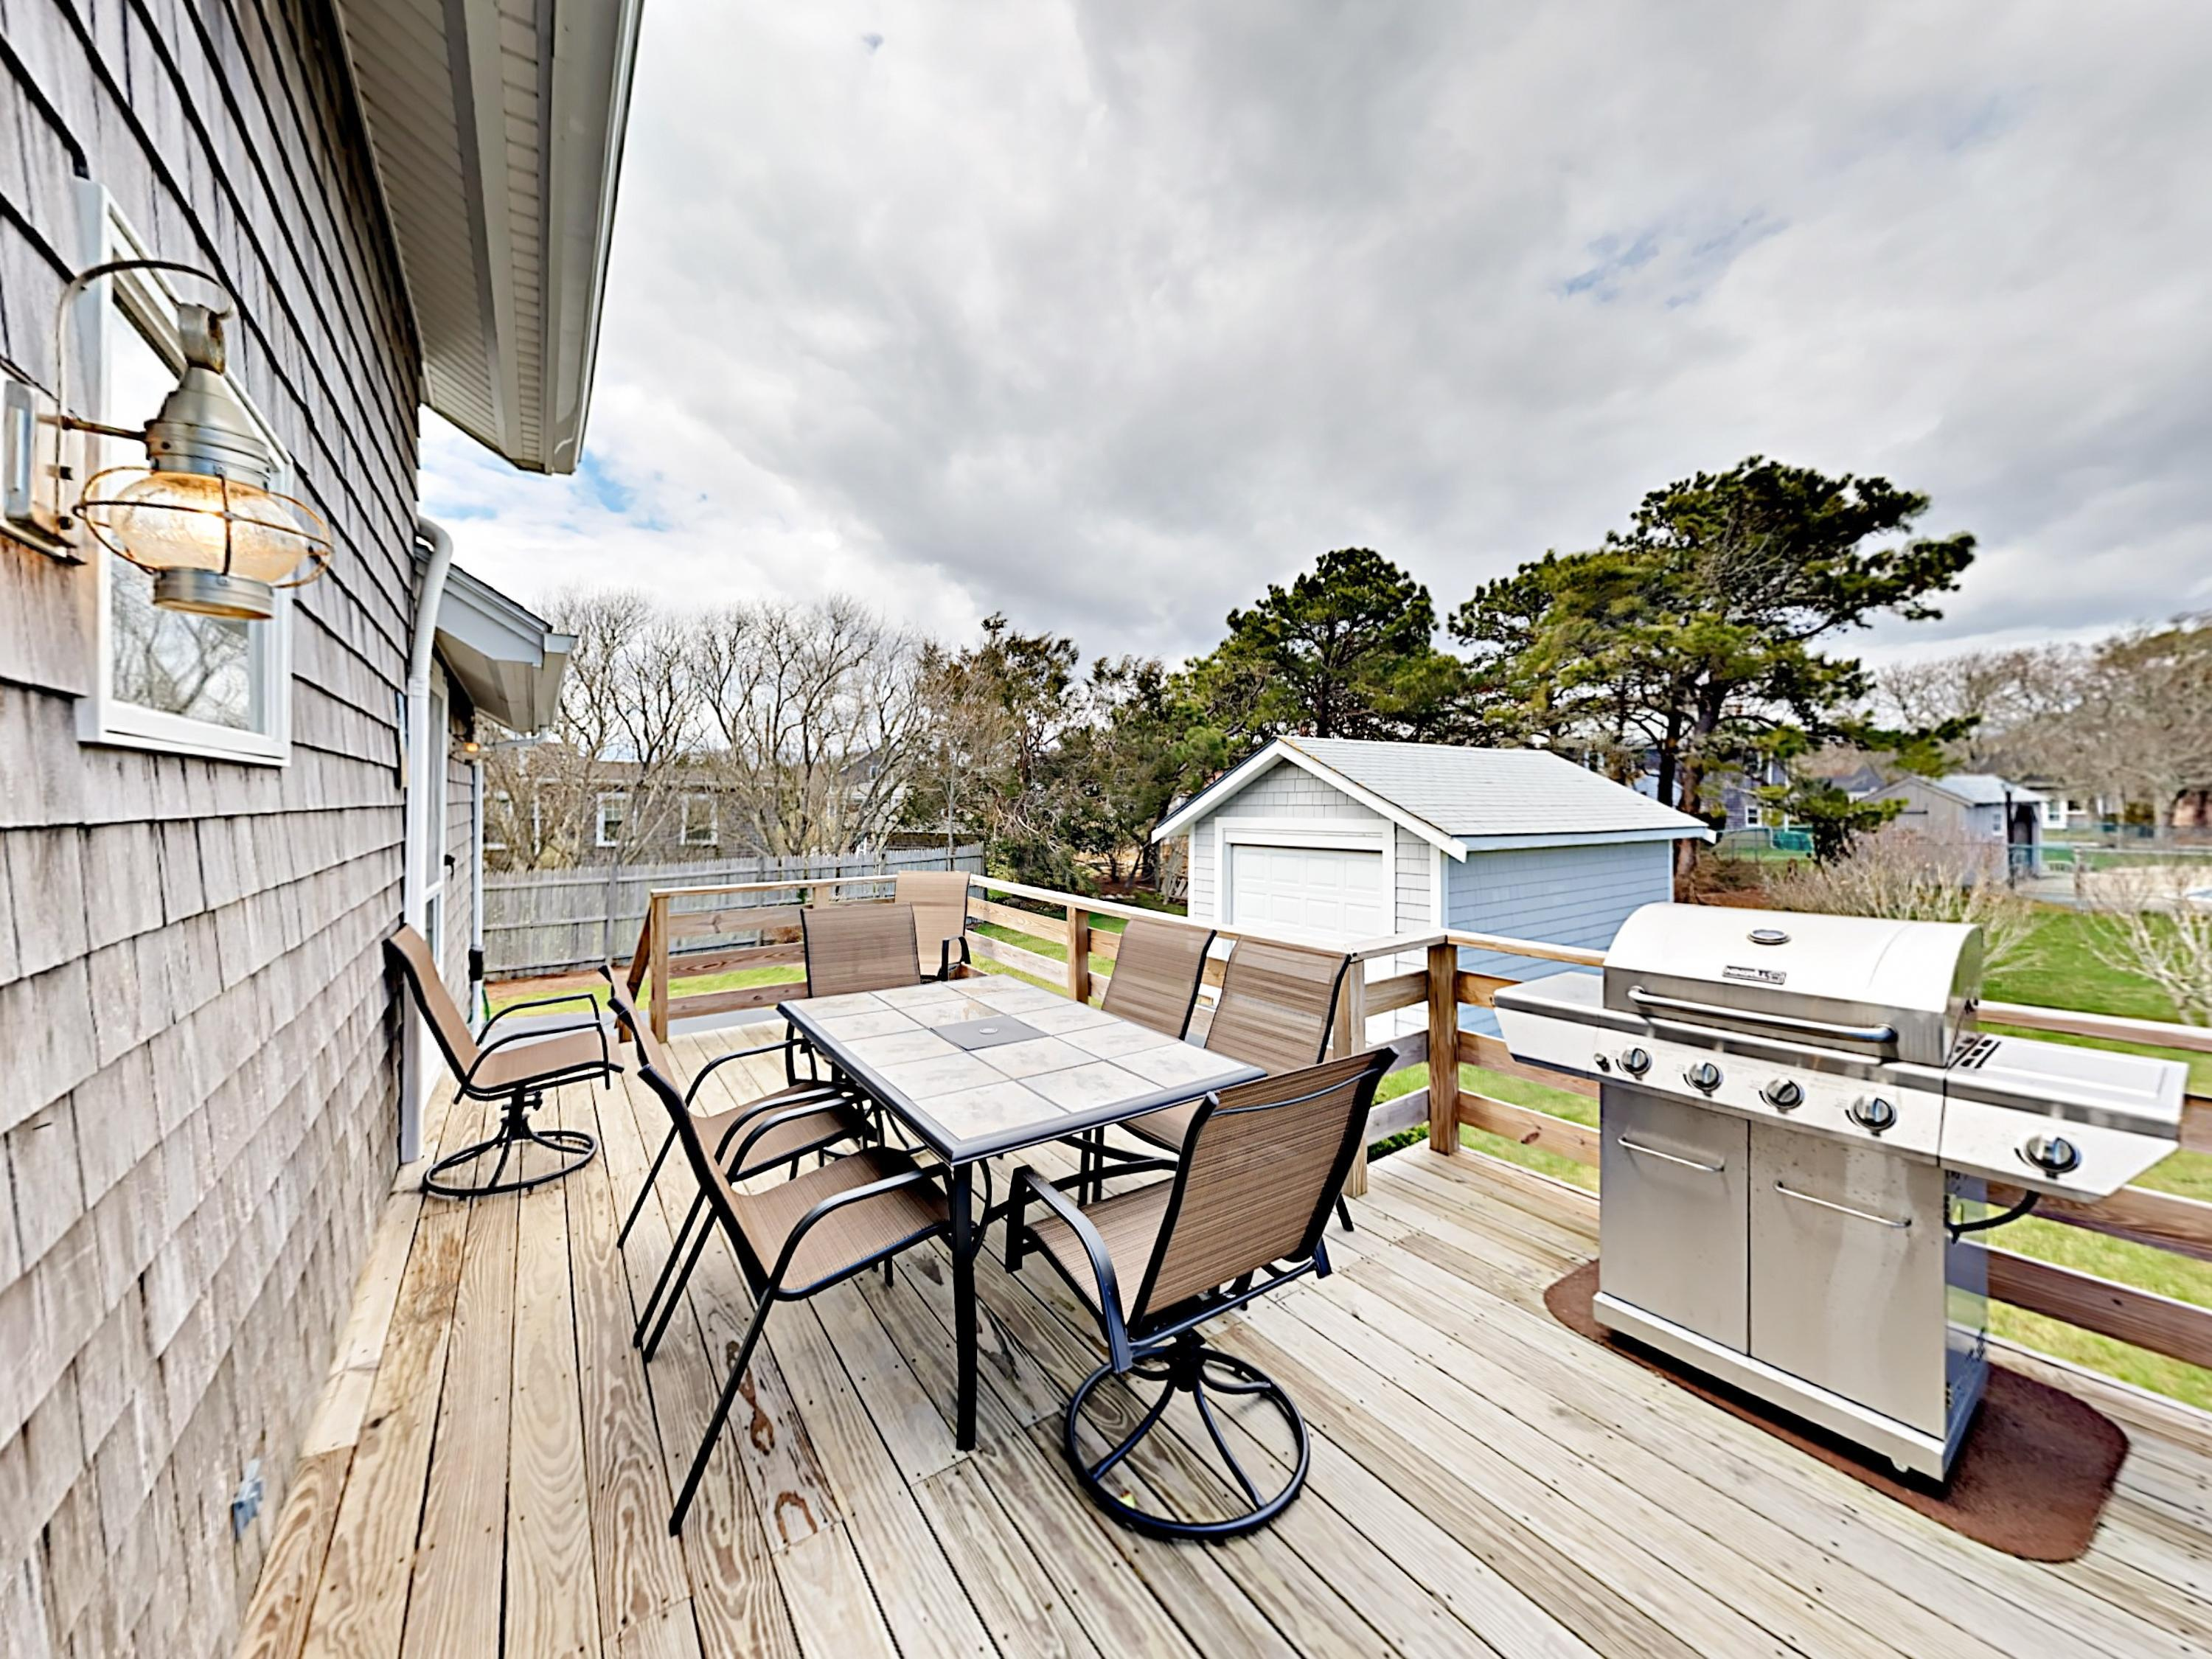 Fire up the grill and dine alfresco on the private deck with seating for 8.